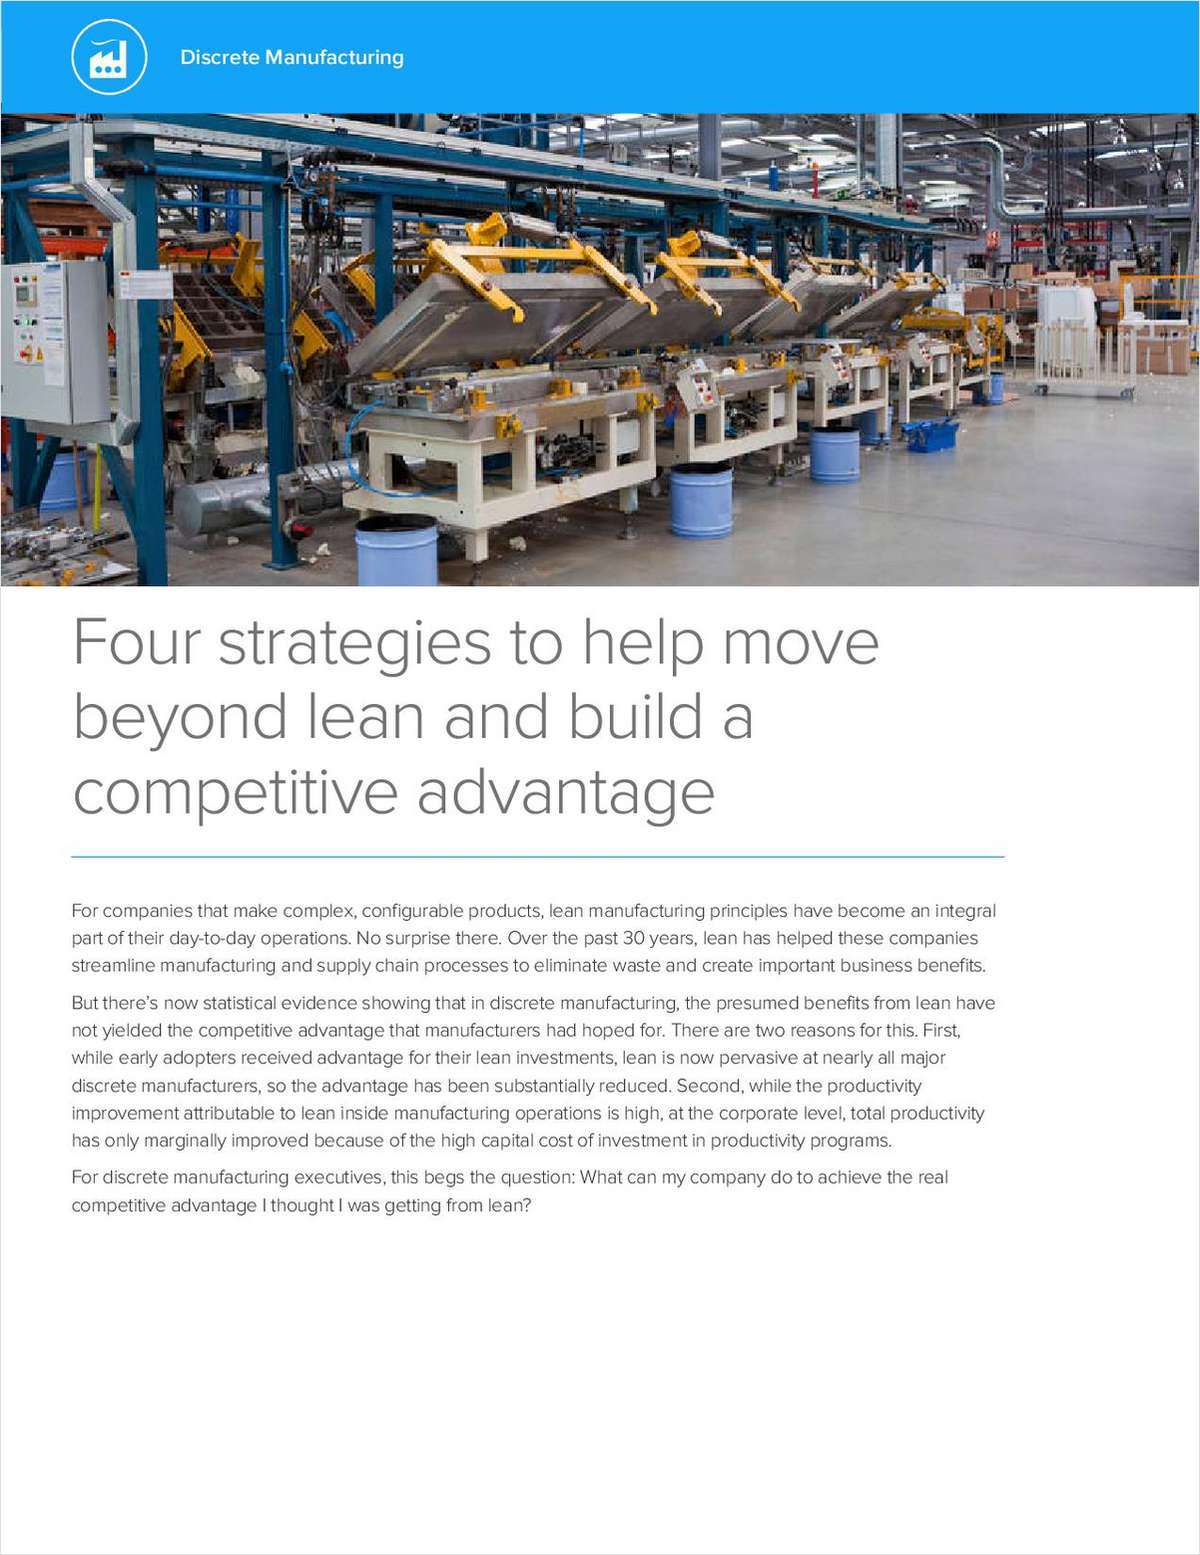 Four Strategies to Help Move Beyond Lean and Build a Competitive Advantage